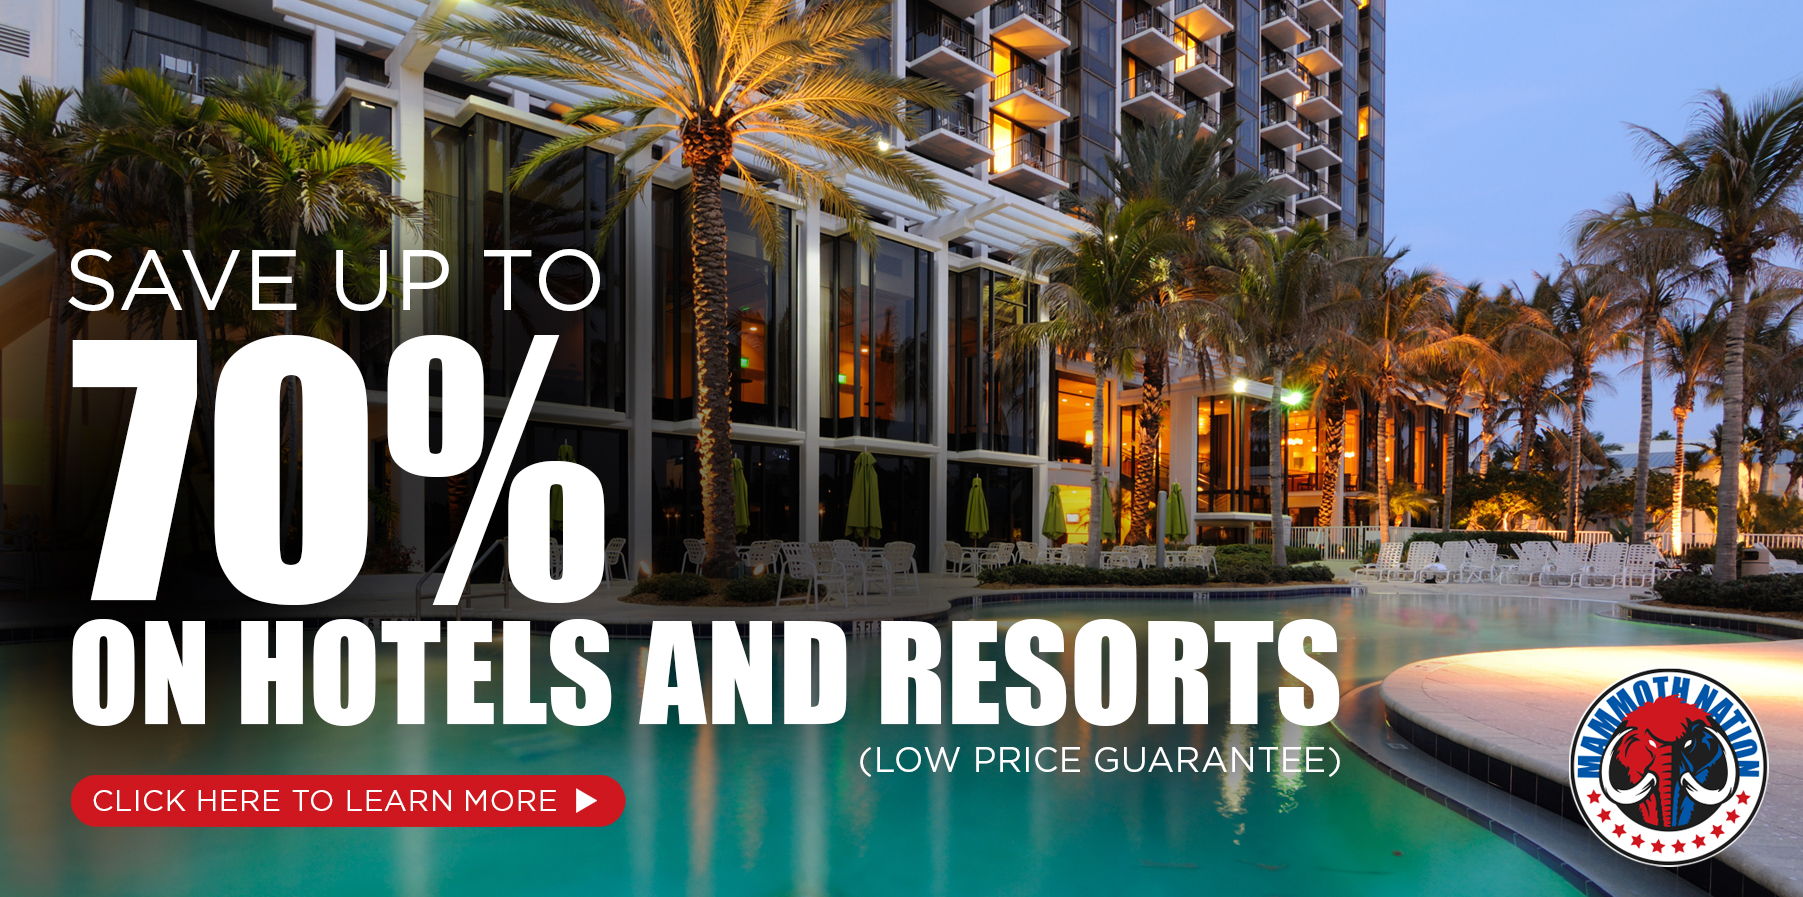 70% off hotels and resorts